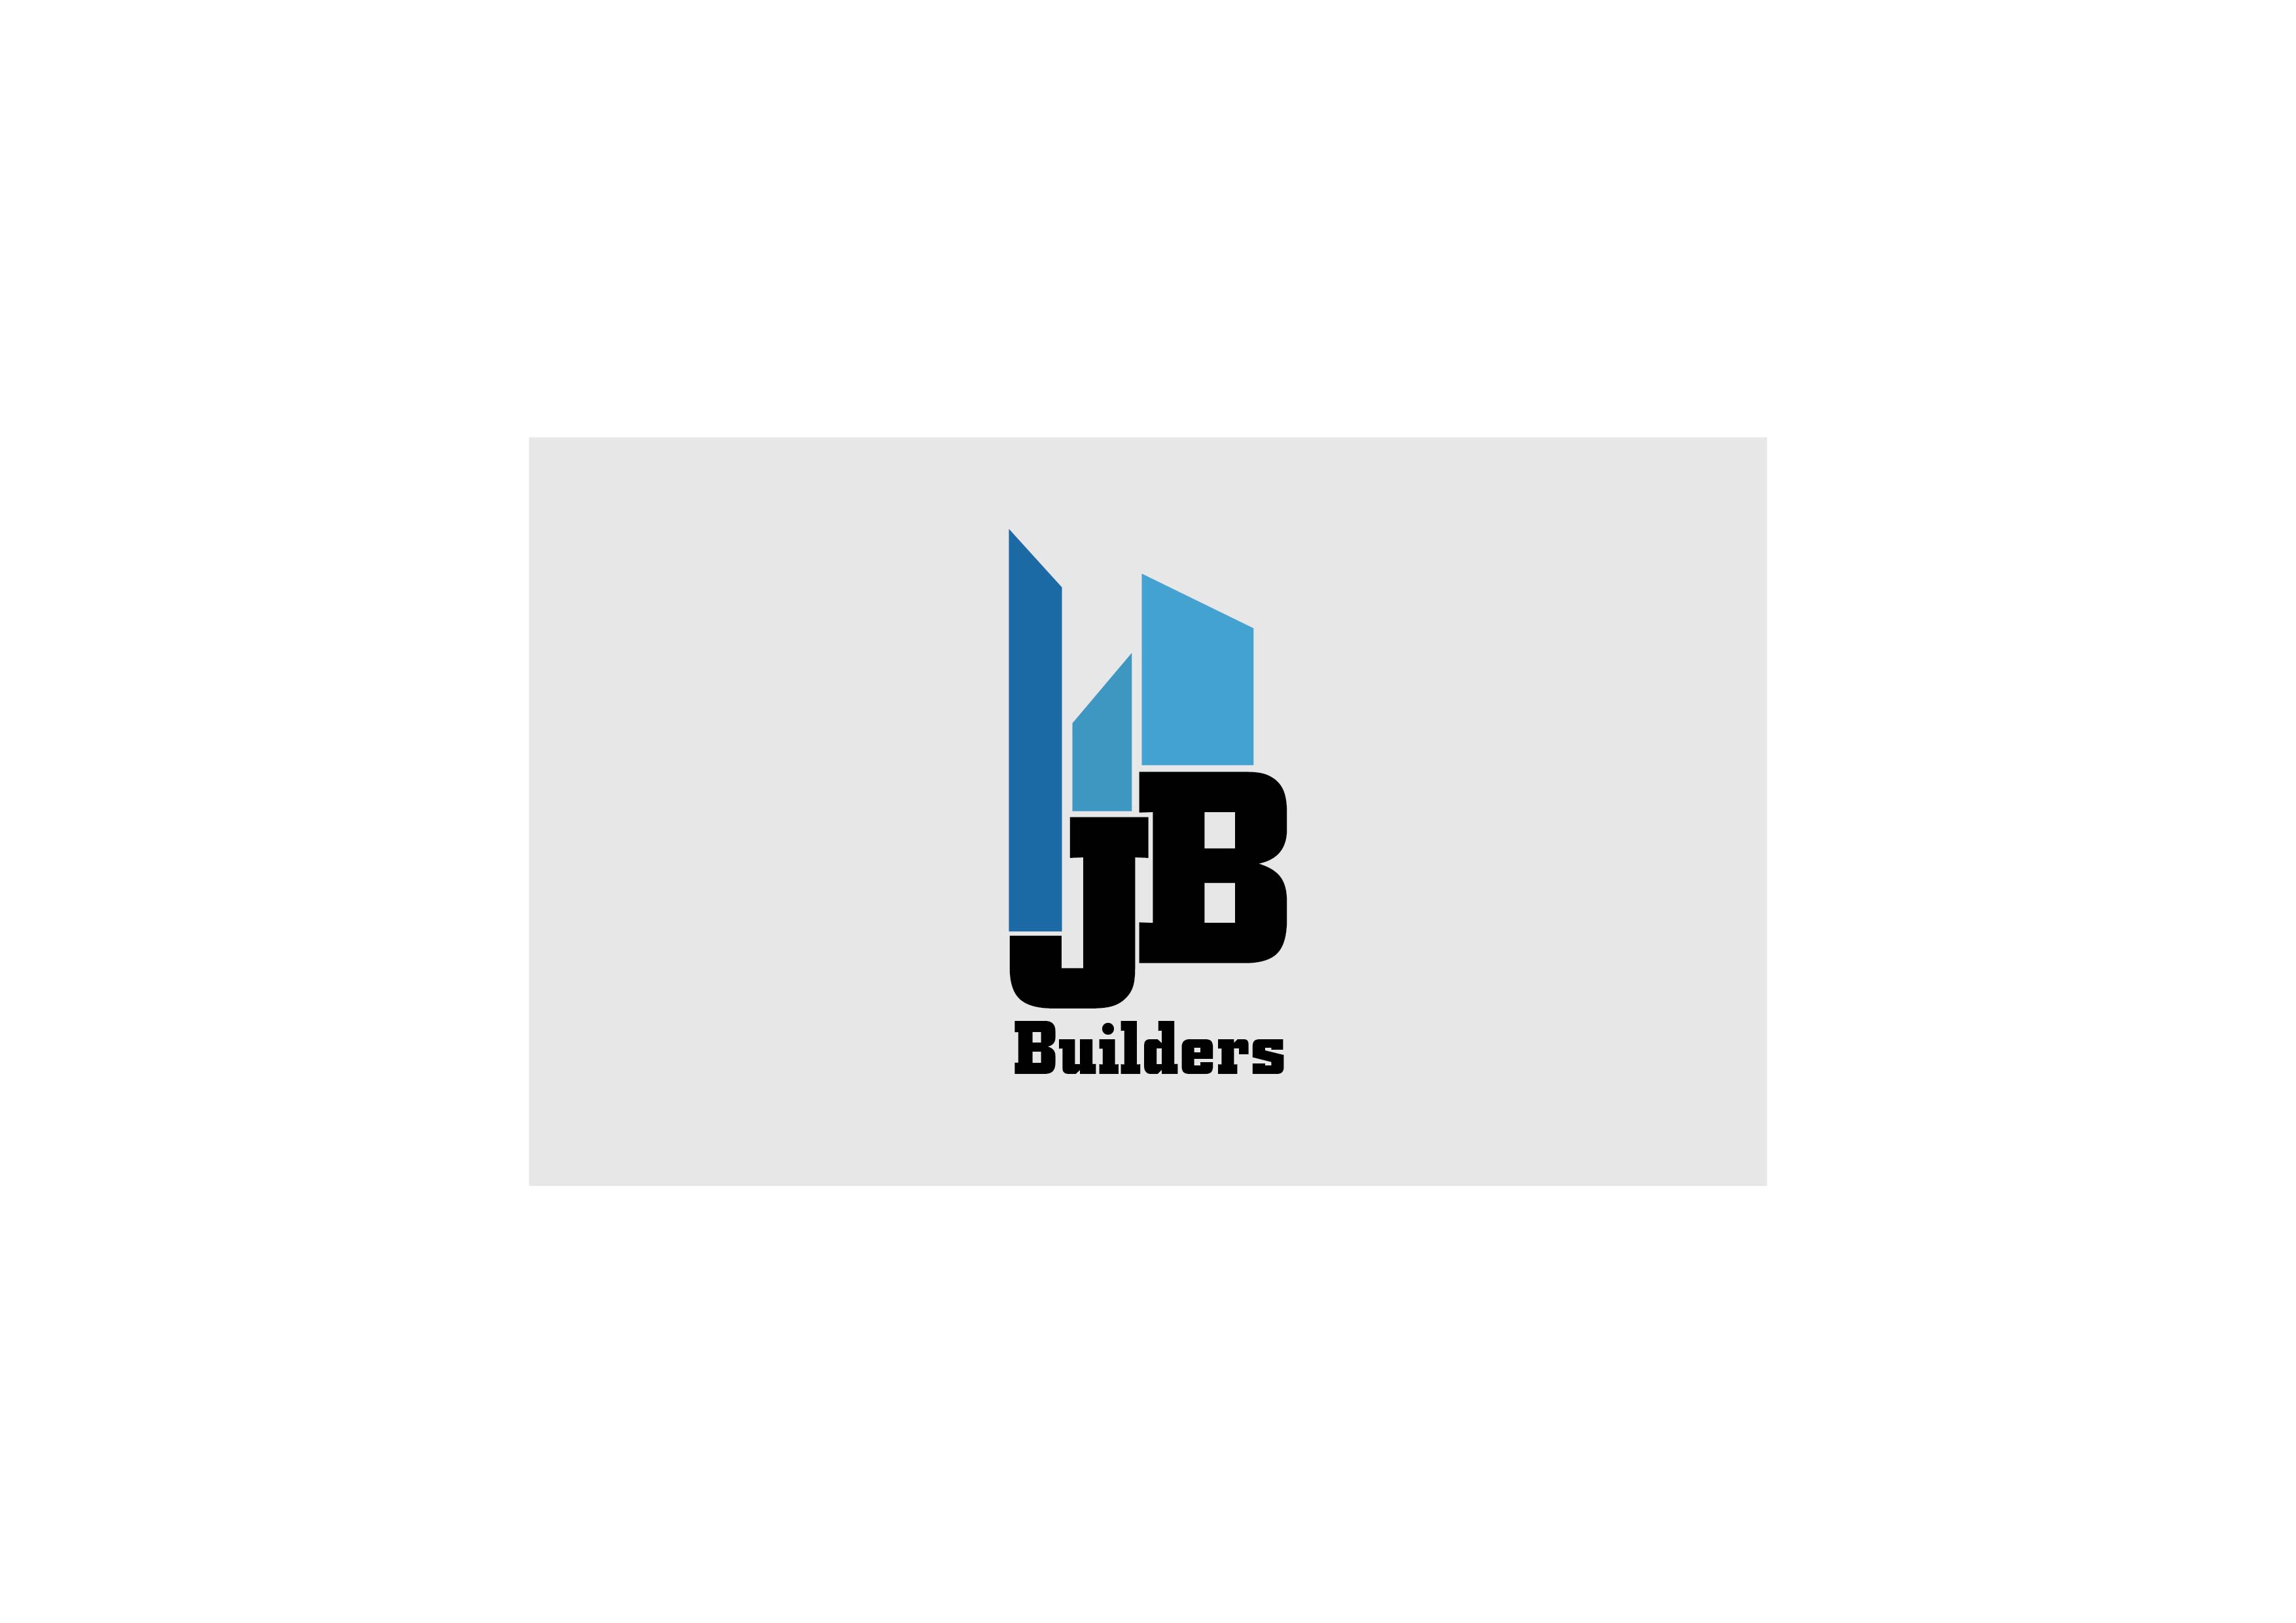 JB Builders Pvt. Ltd